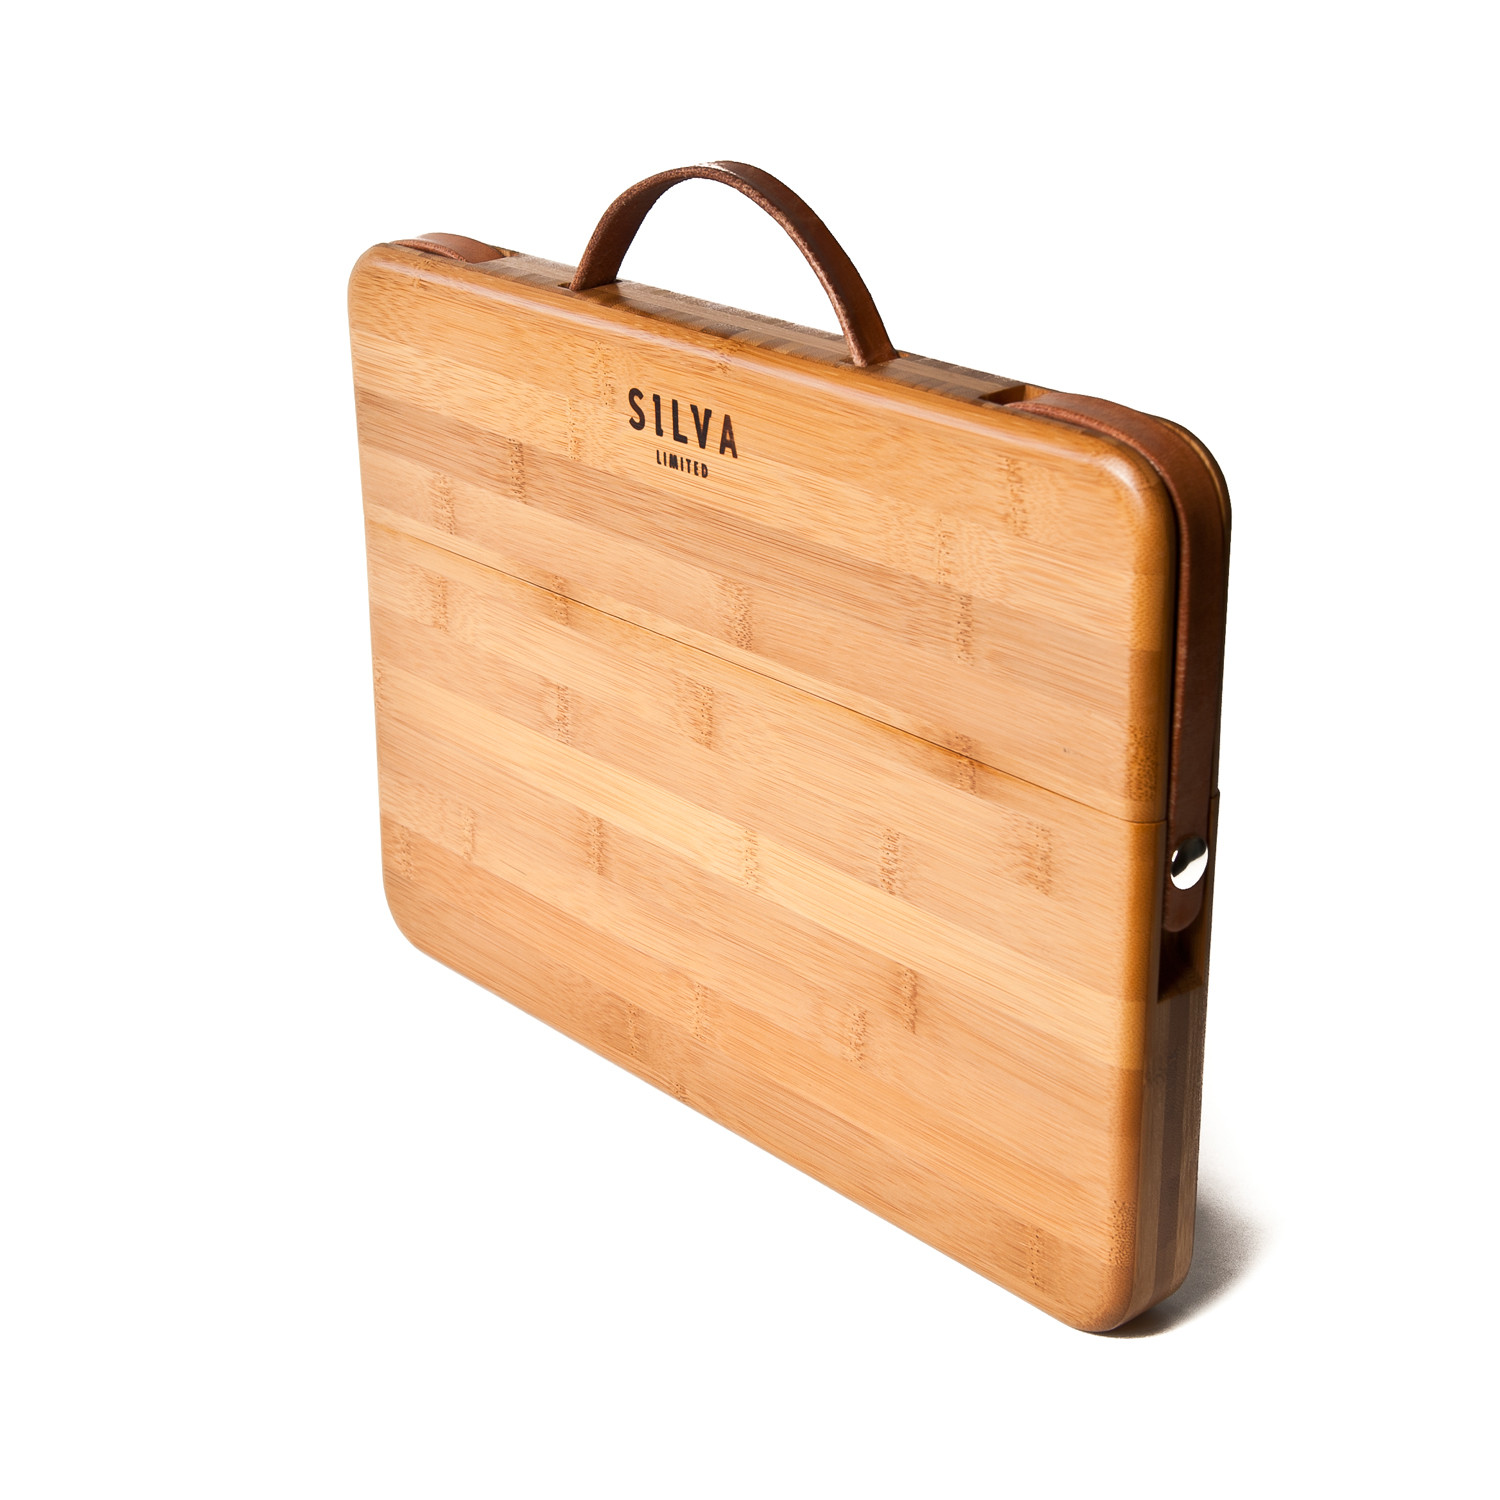 online store ff52f b4b69 Silva Ltd. - Bamboo Cases for iPad & Macbook - Touch of Modern